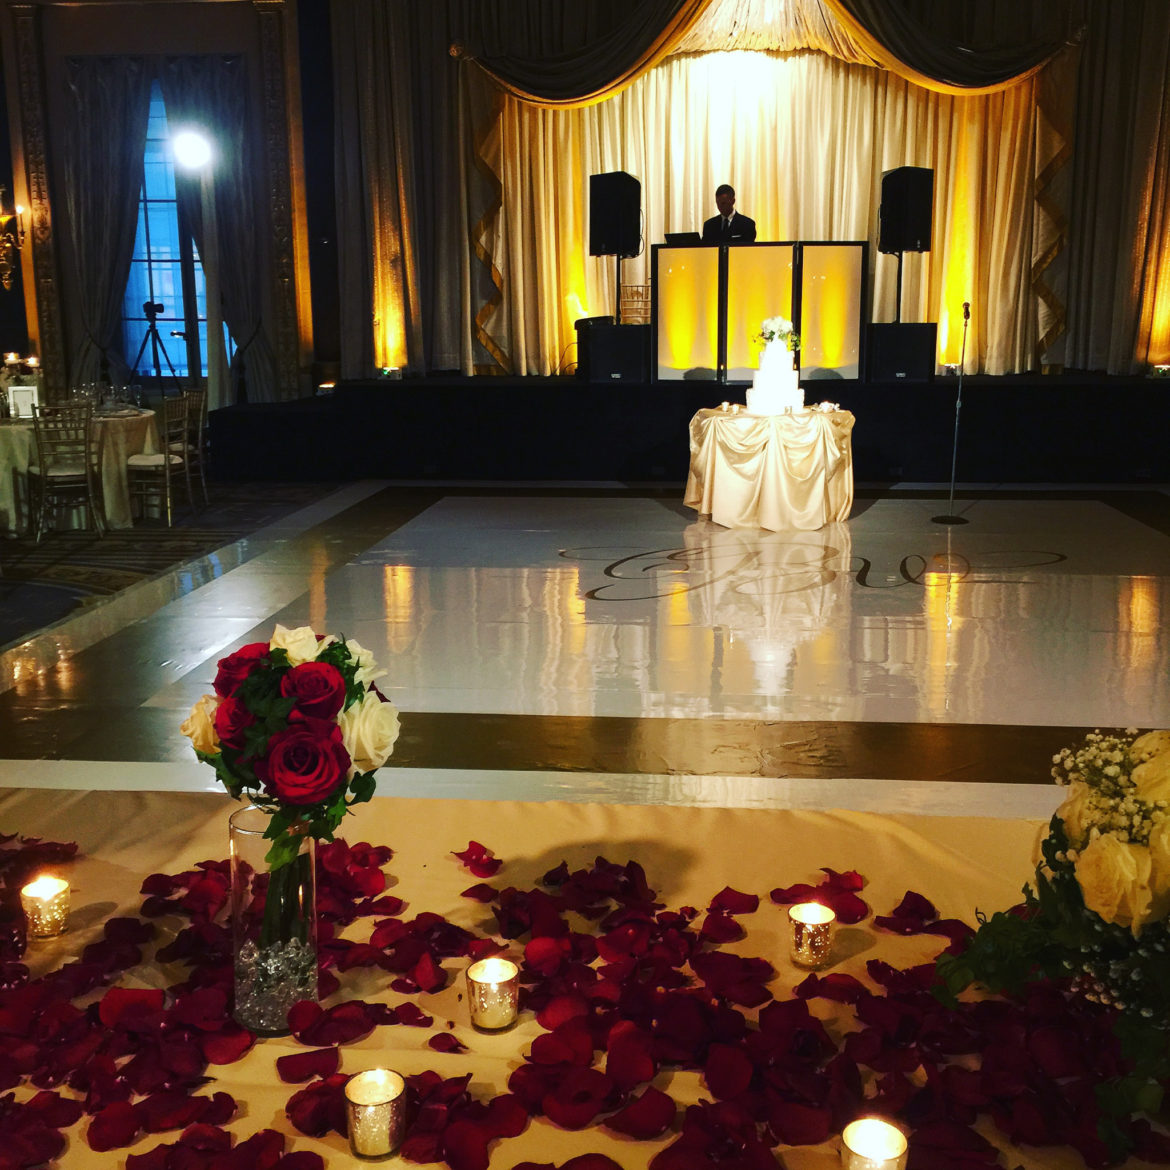 Elegant_Event_Lighting_Chicago_Palmer_House_Hilton_Wedding_Amber_Uplighting_Dance_Floor_Monogram_Flower_Cake_Lighting